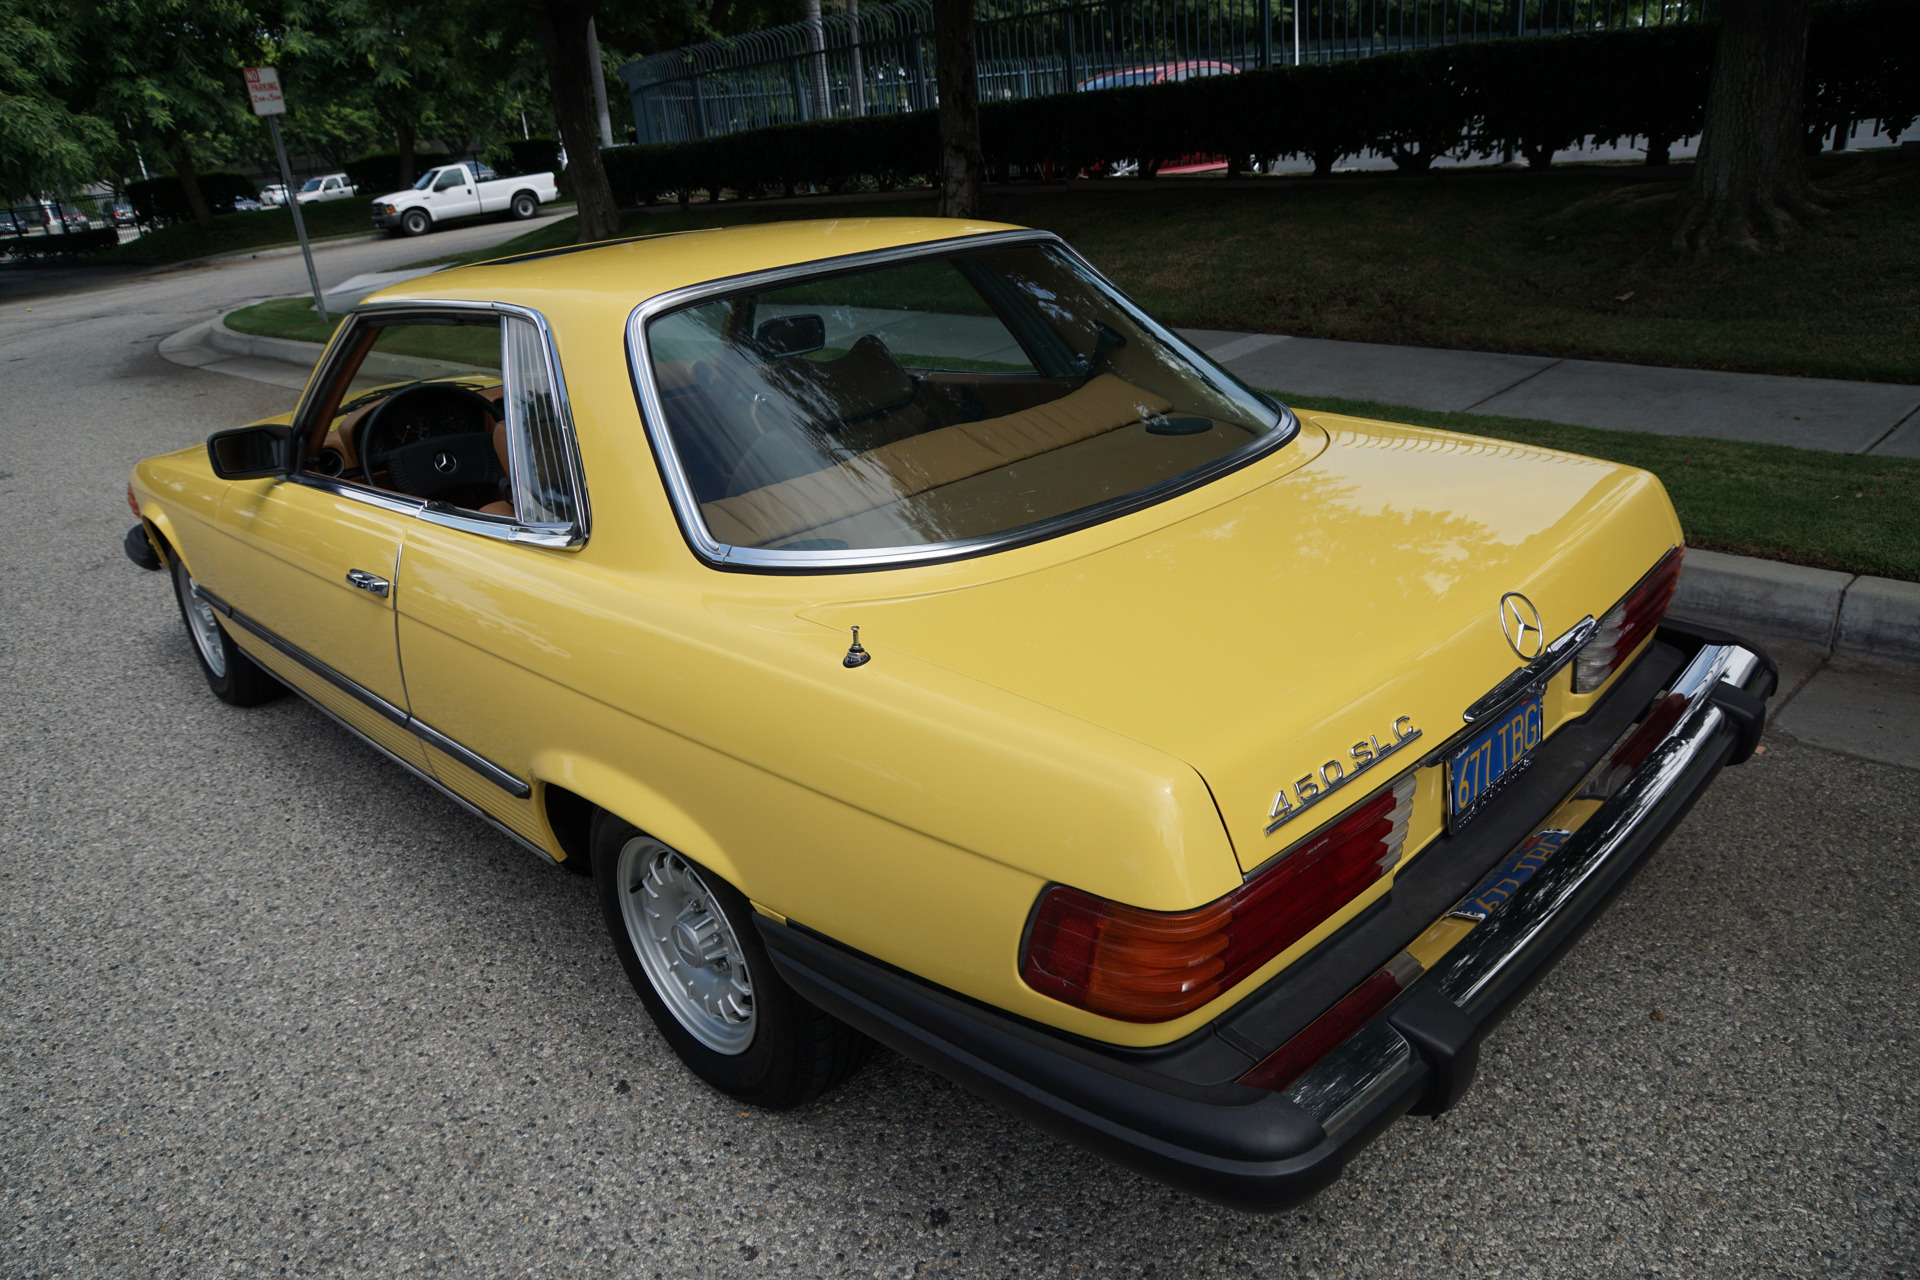 1977 mercedes benz 450slc stock 358 for sale near for Mercedes benz torrance ca